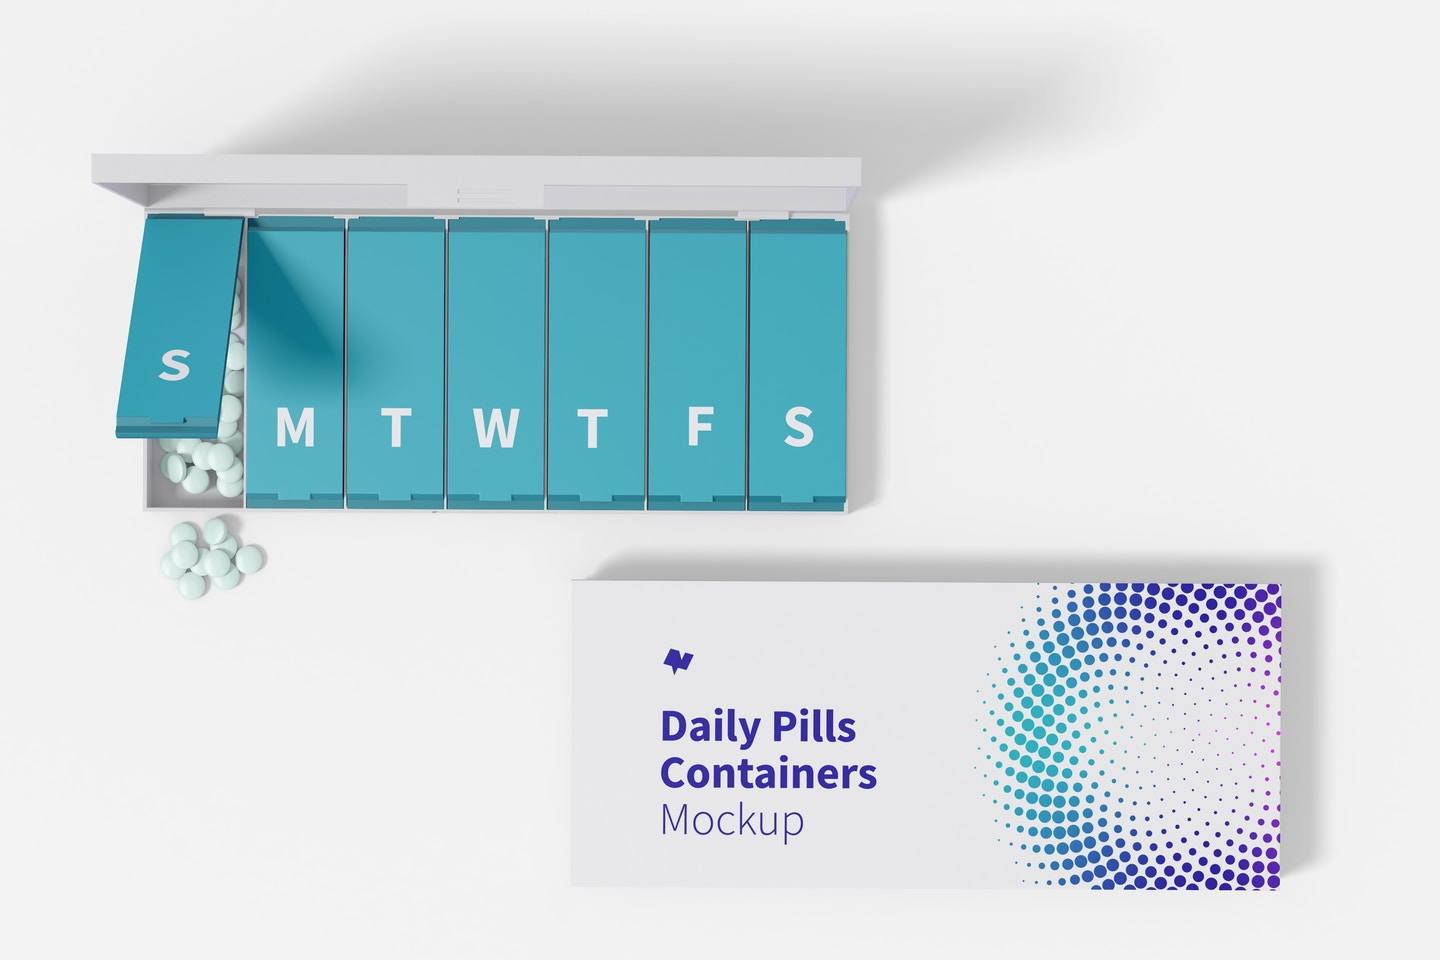 Daily Pills Containers Mockup, Top View